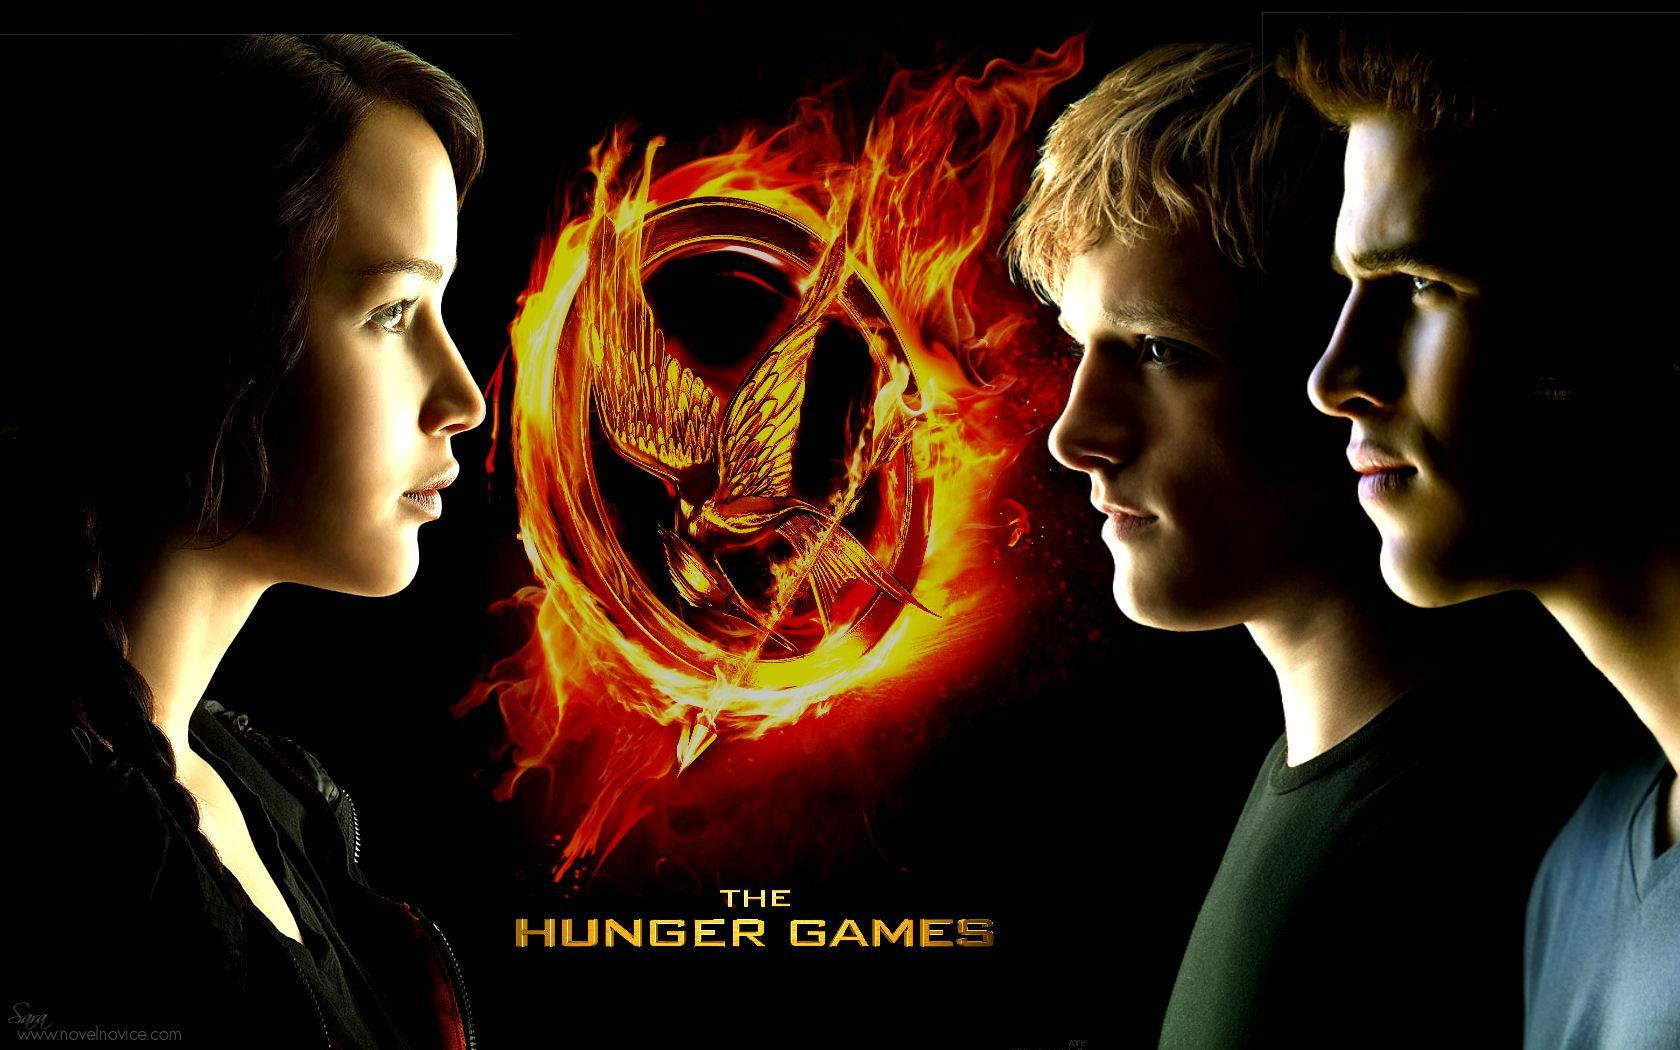 Which Hunger Games character do you think is best?